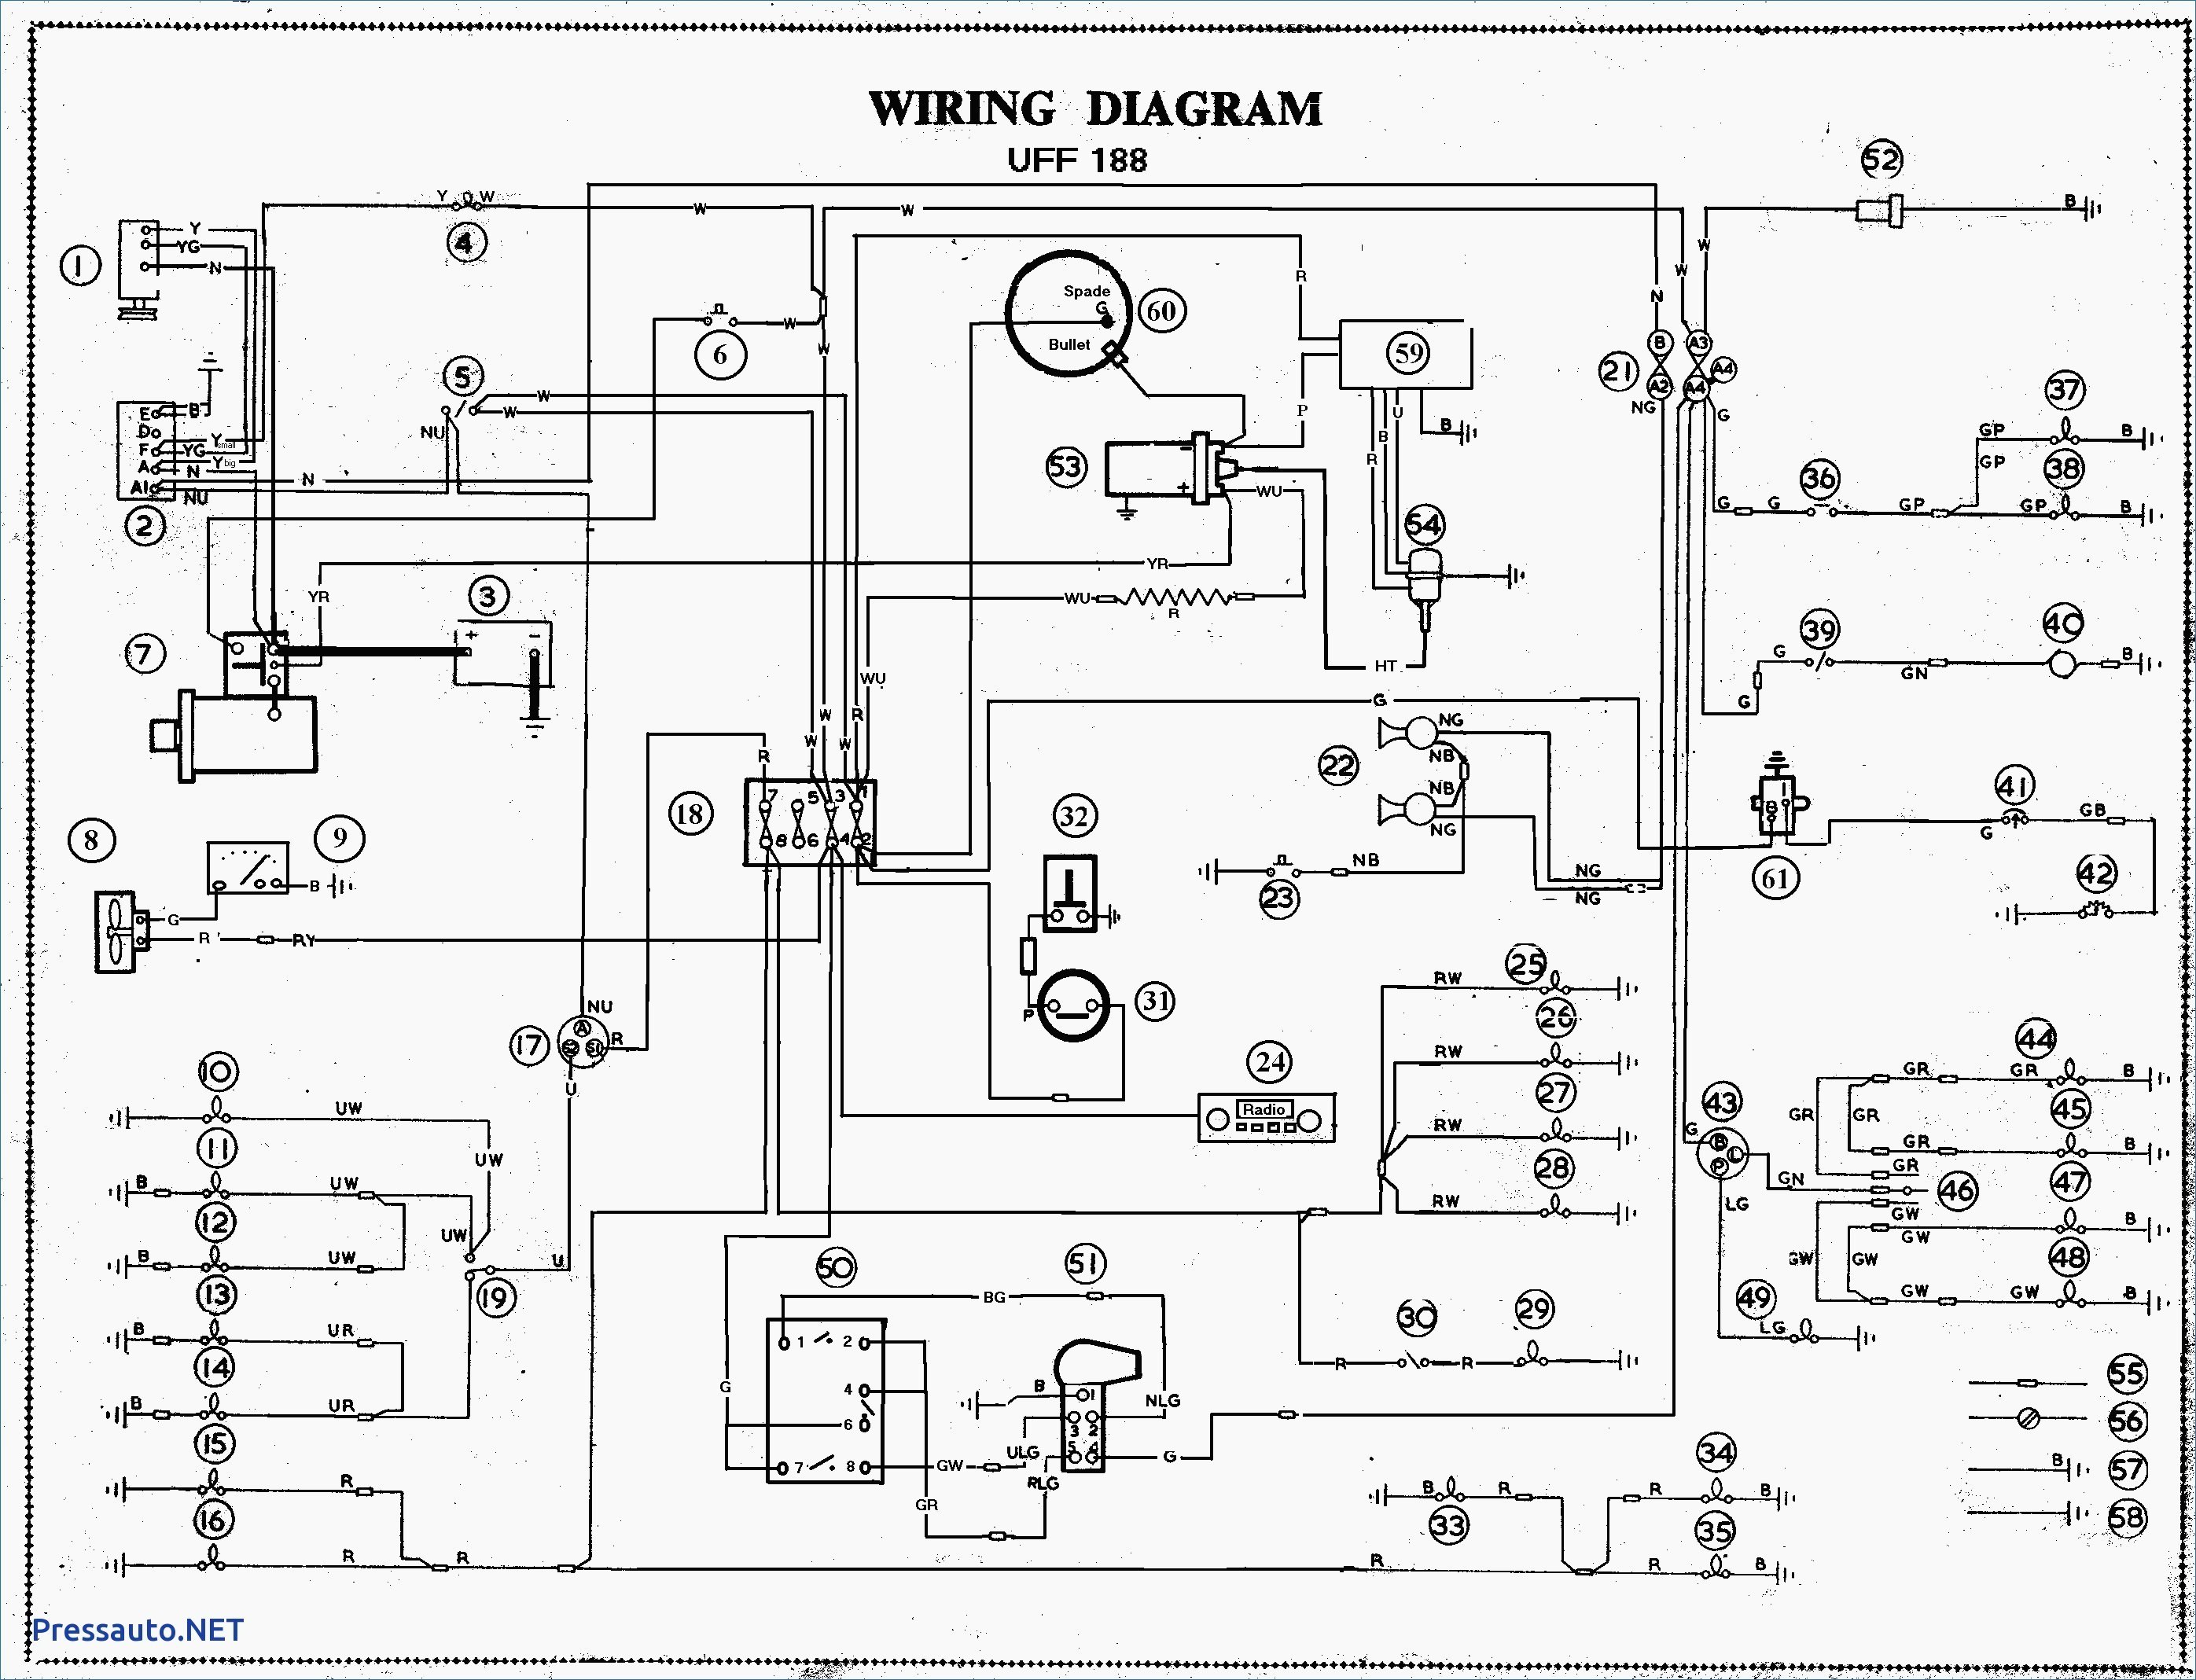 Vehicle Wiring Diagram App - Data Wiring Diagram Schematic - Automotive Wiring Diagram